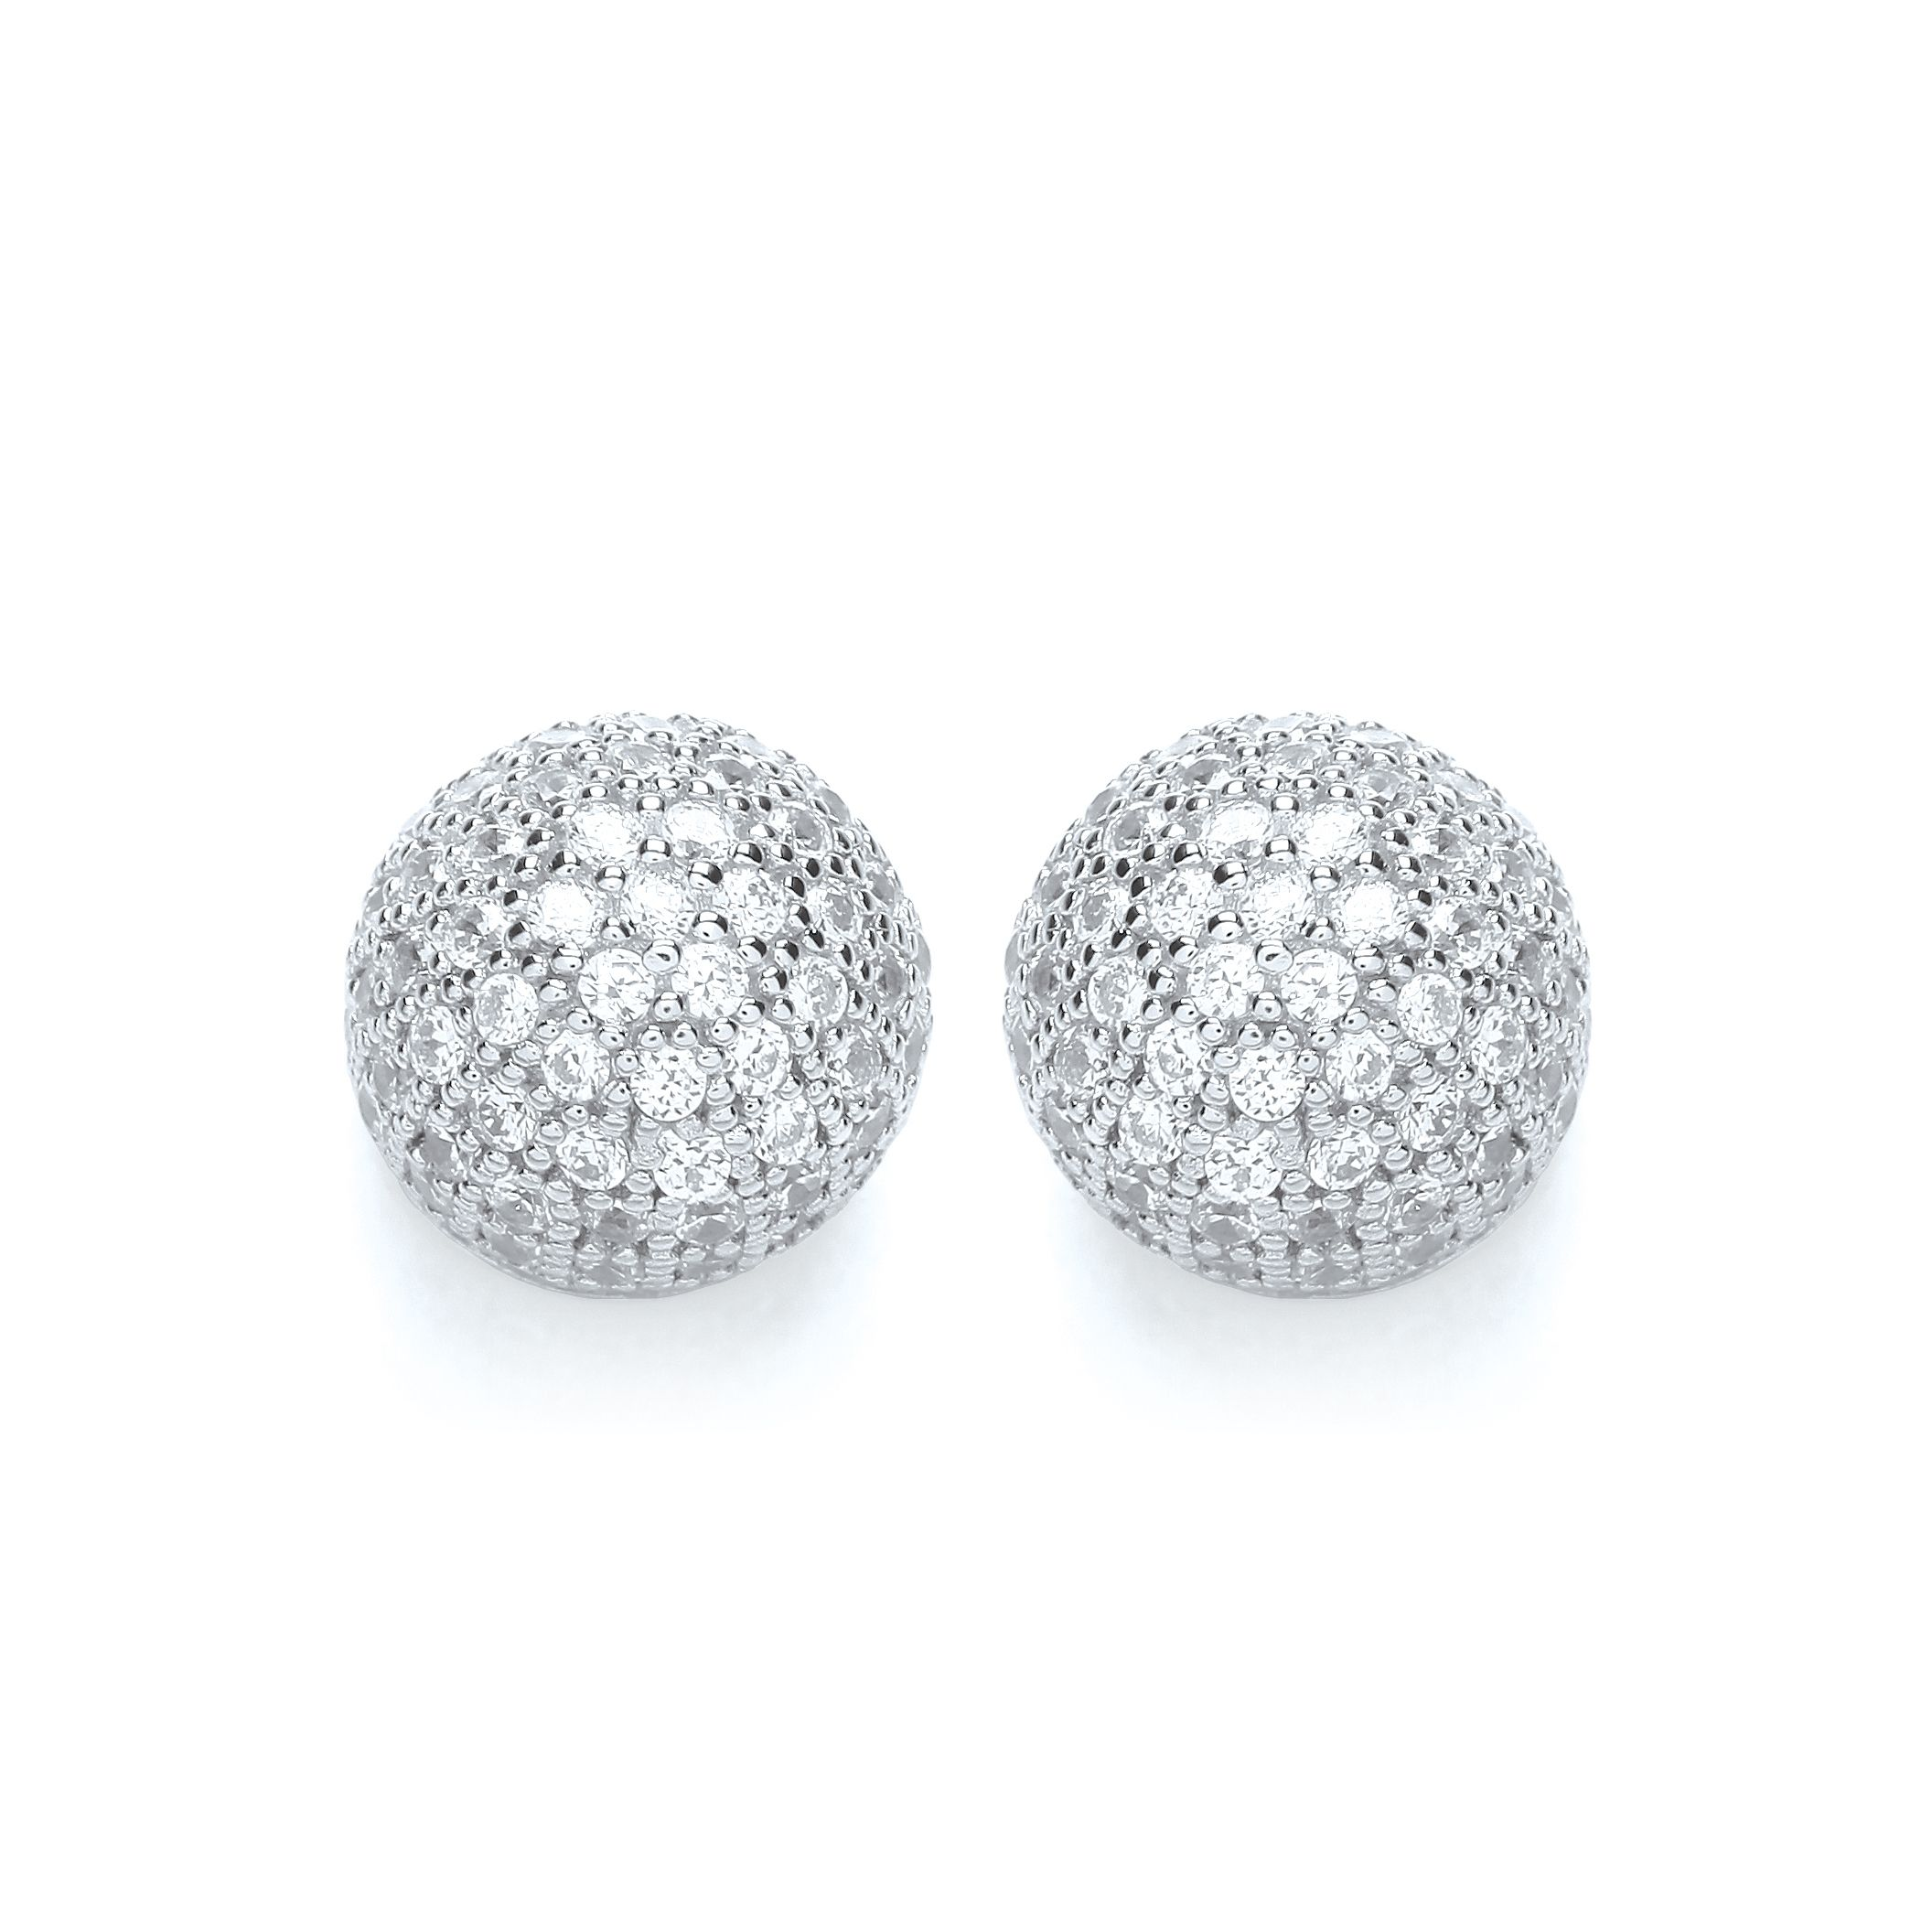 Snowball stud earrings